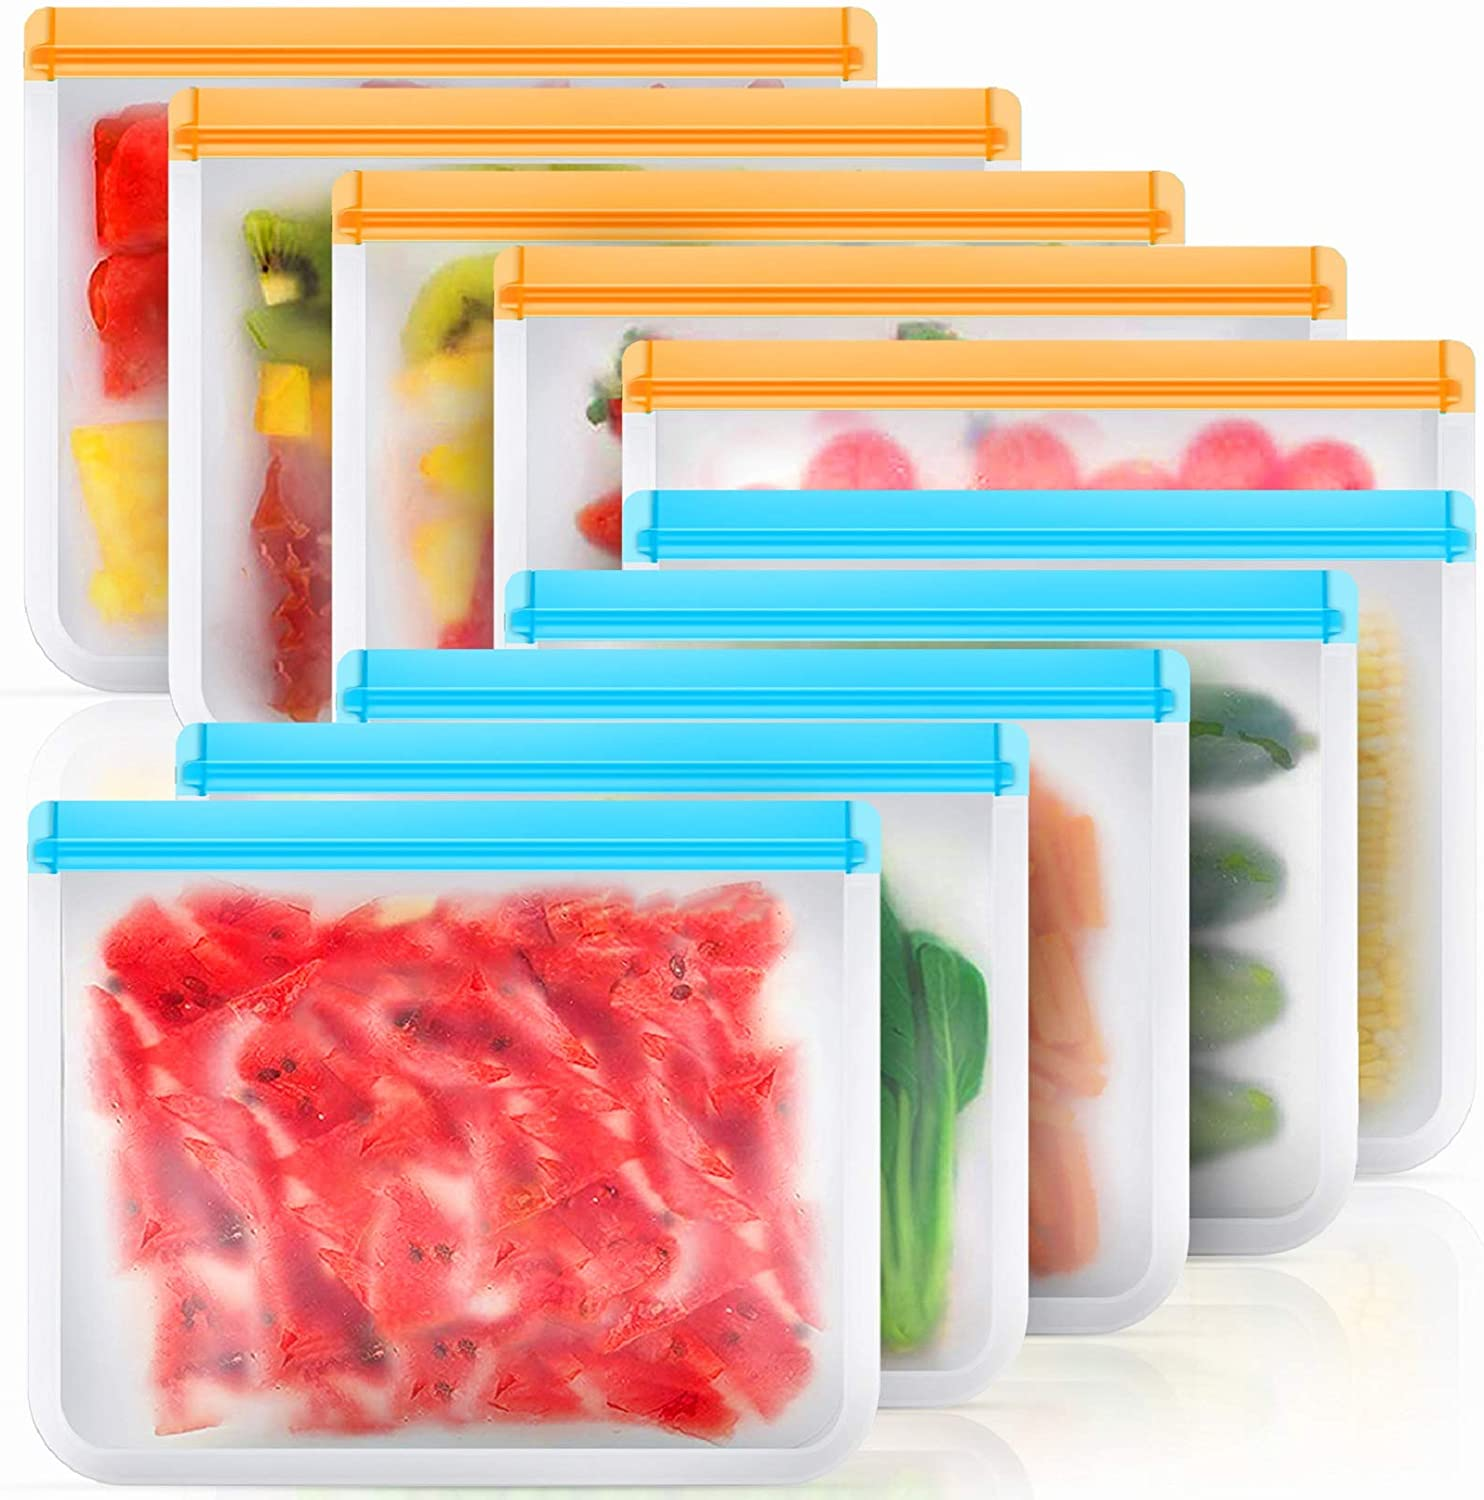 Reusable Storage Bags 10 Pack, BPA Free Reusable Freezer Bags, Large Silicone Food Bags, Reusable Sandwich Bags, Reusable Gallon Bags for Food, Reusable Bags for Lunch Sandwich Snack Meat Fruit …